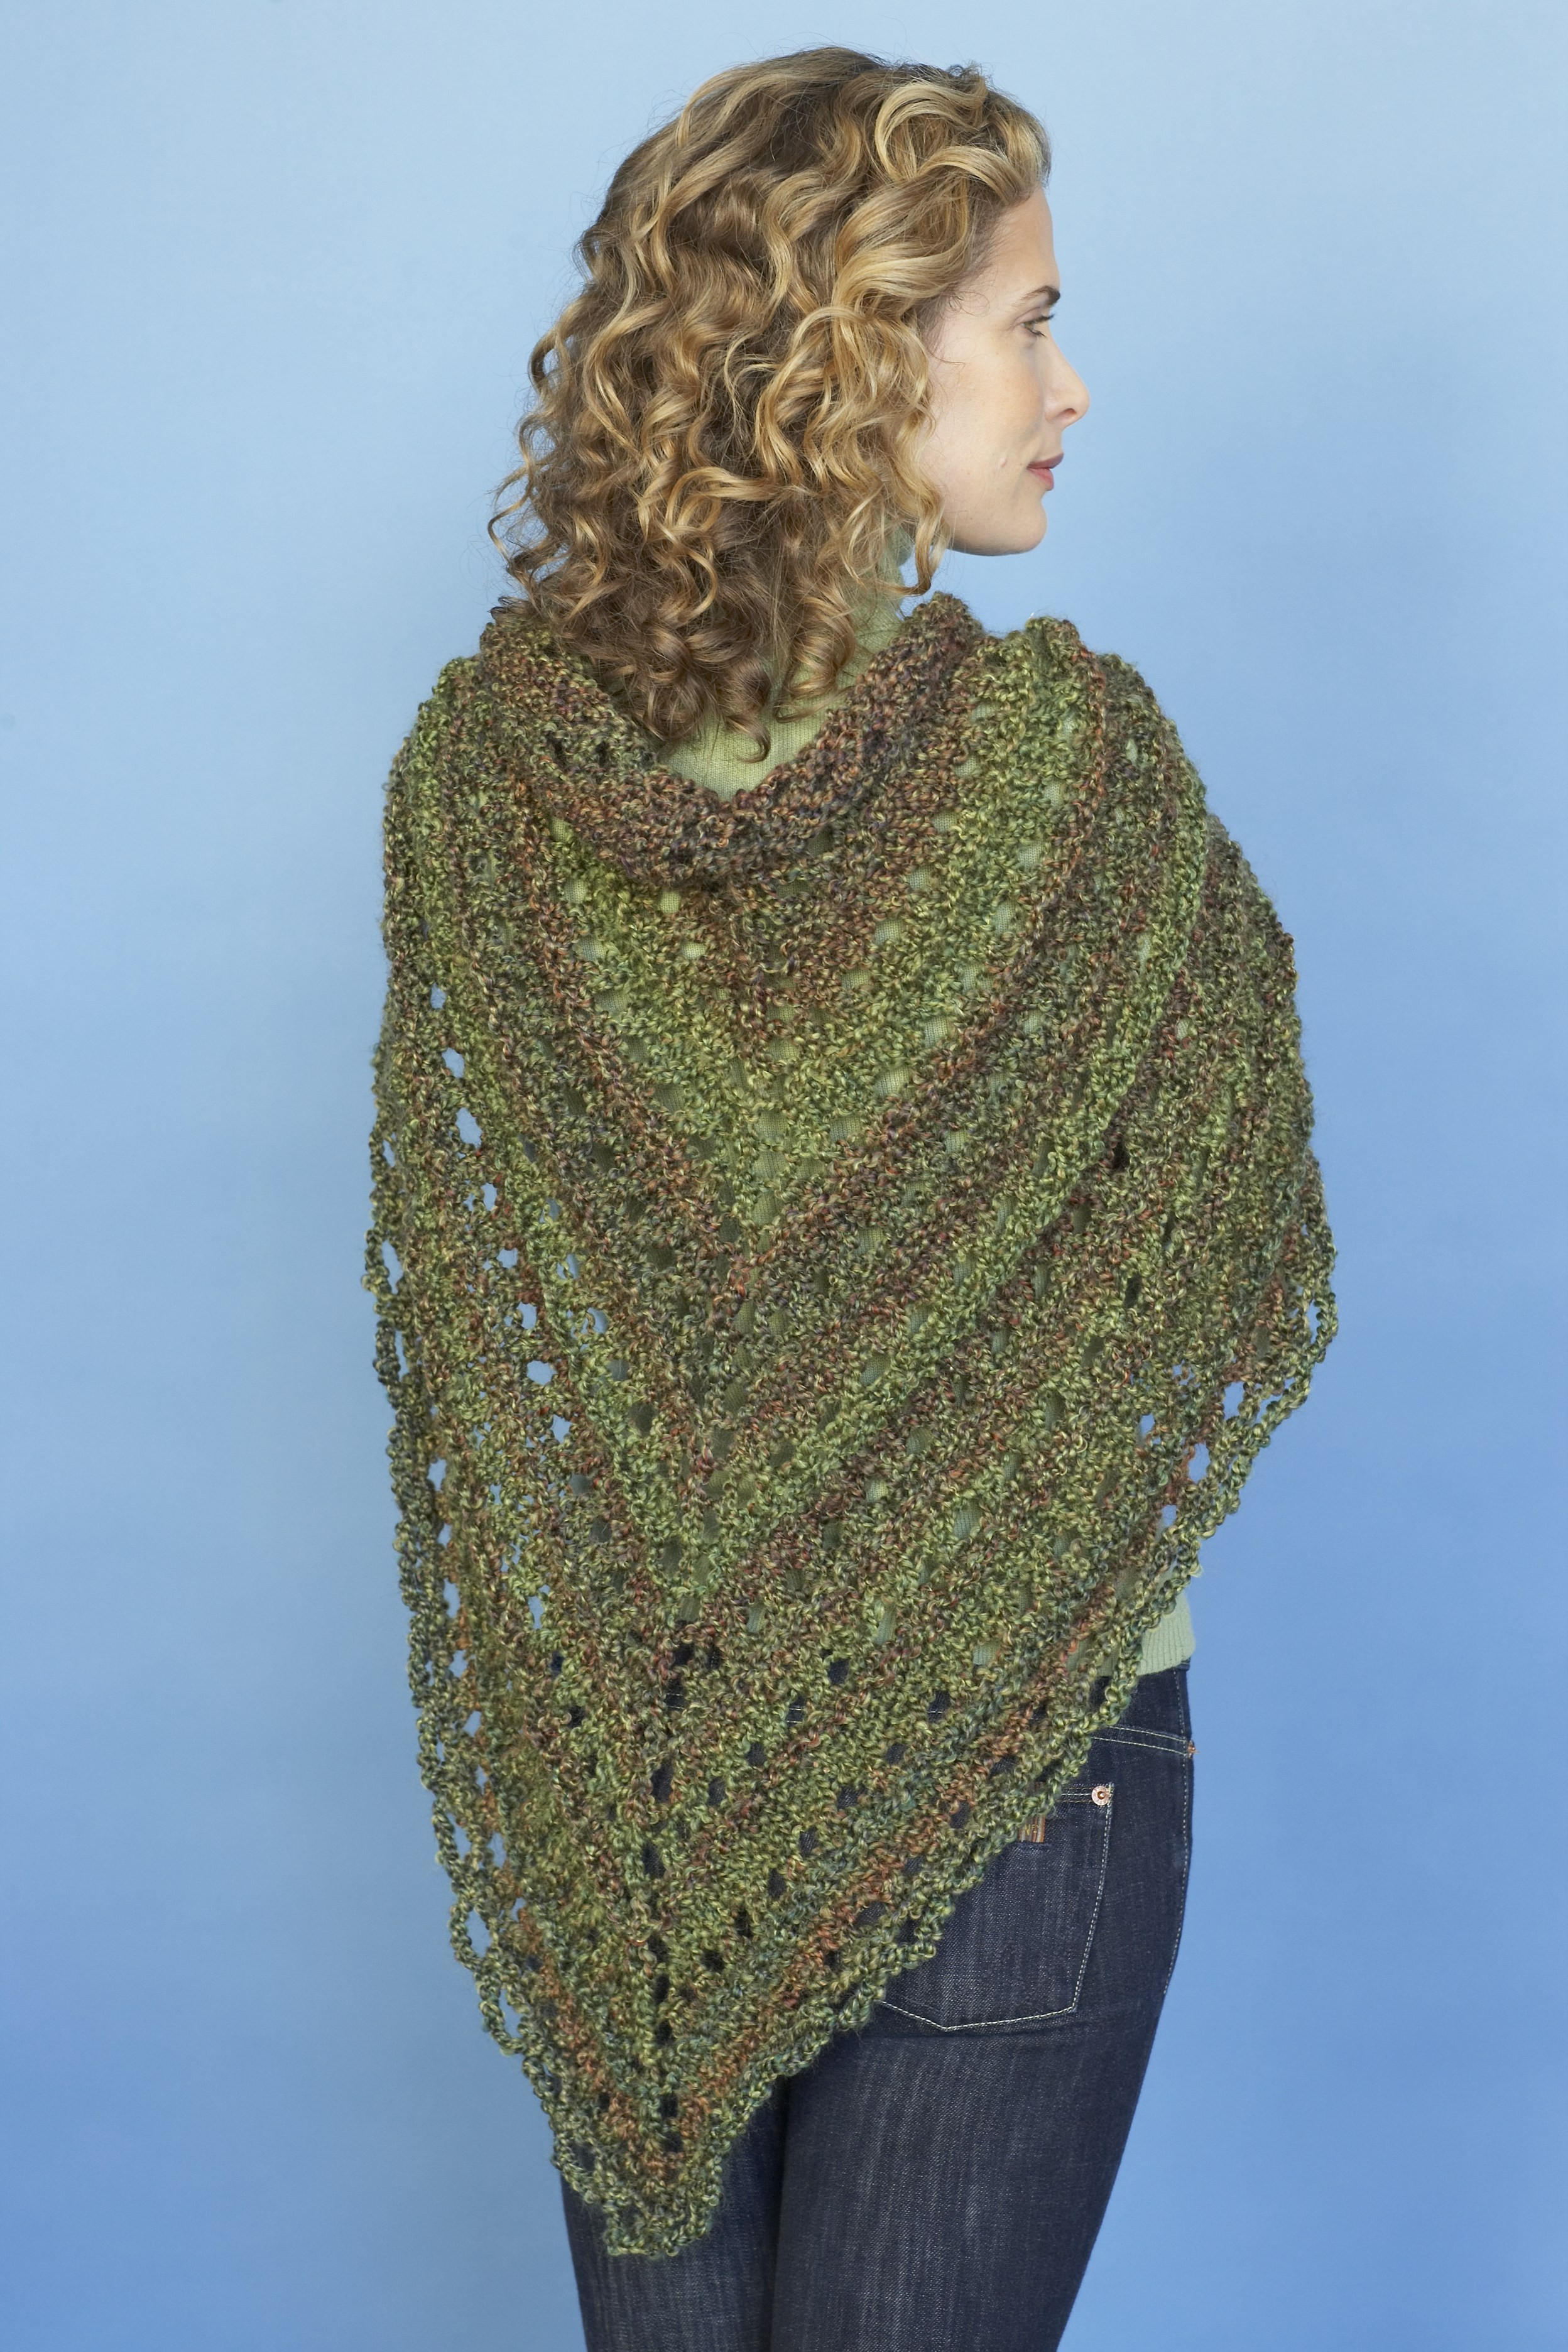 Awesome Splendid Triangle Shawl In Lion Brand Homespun Ad Lion Brand Crochet Patterns Of New 46 Ideas Lion Brand Crochet Patterns